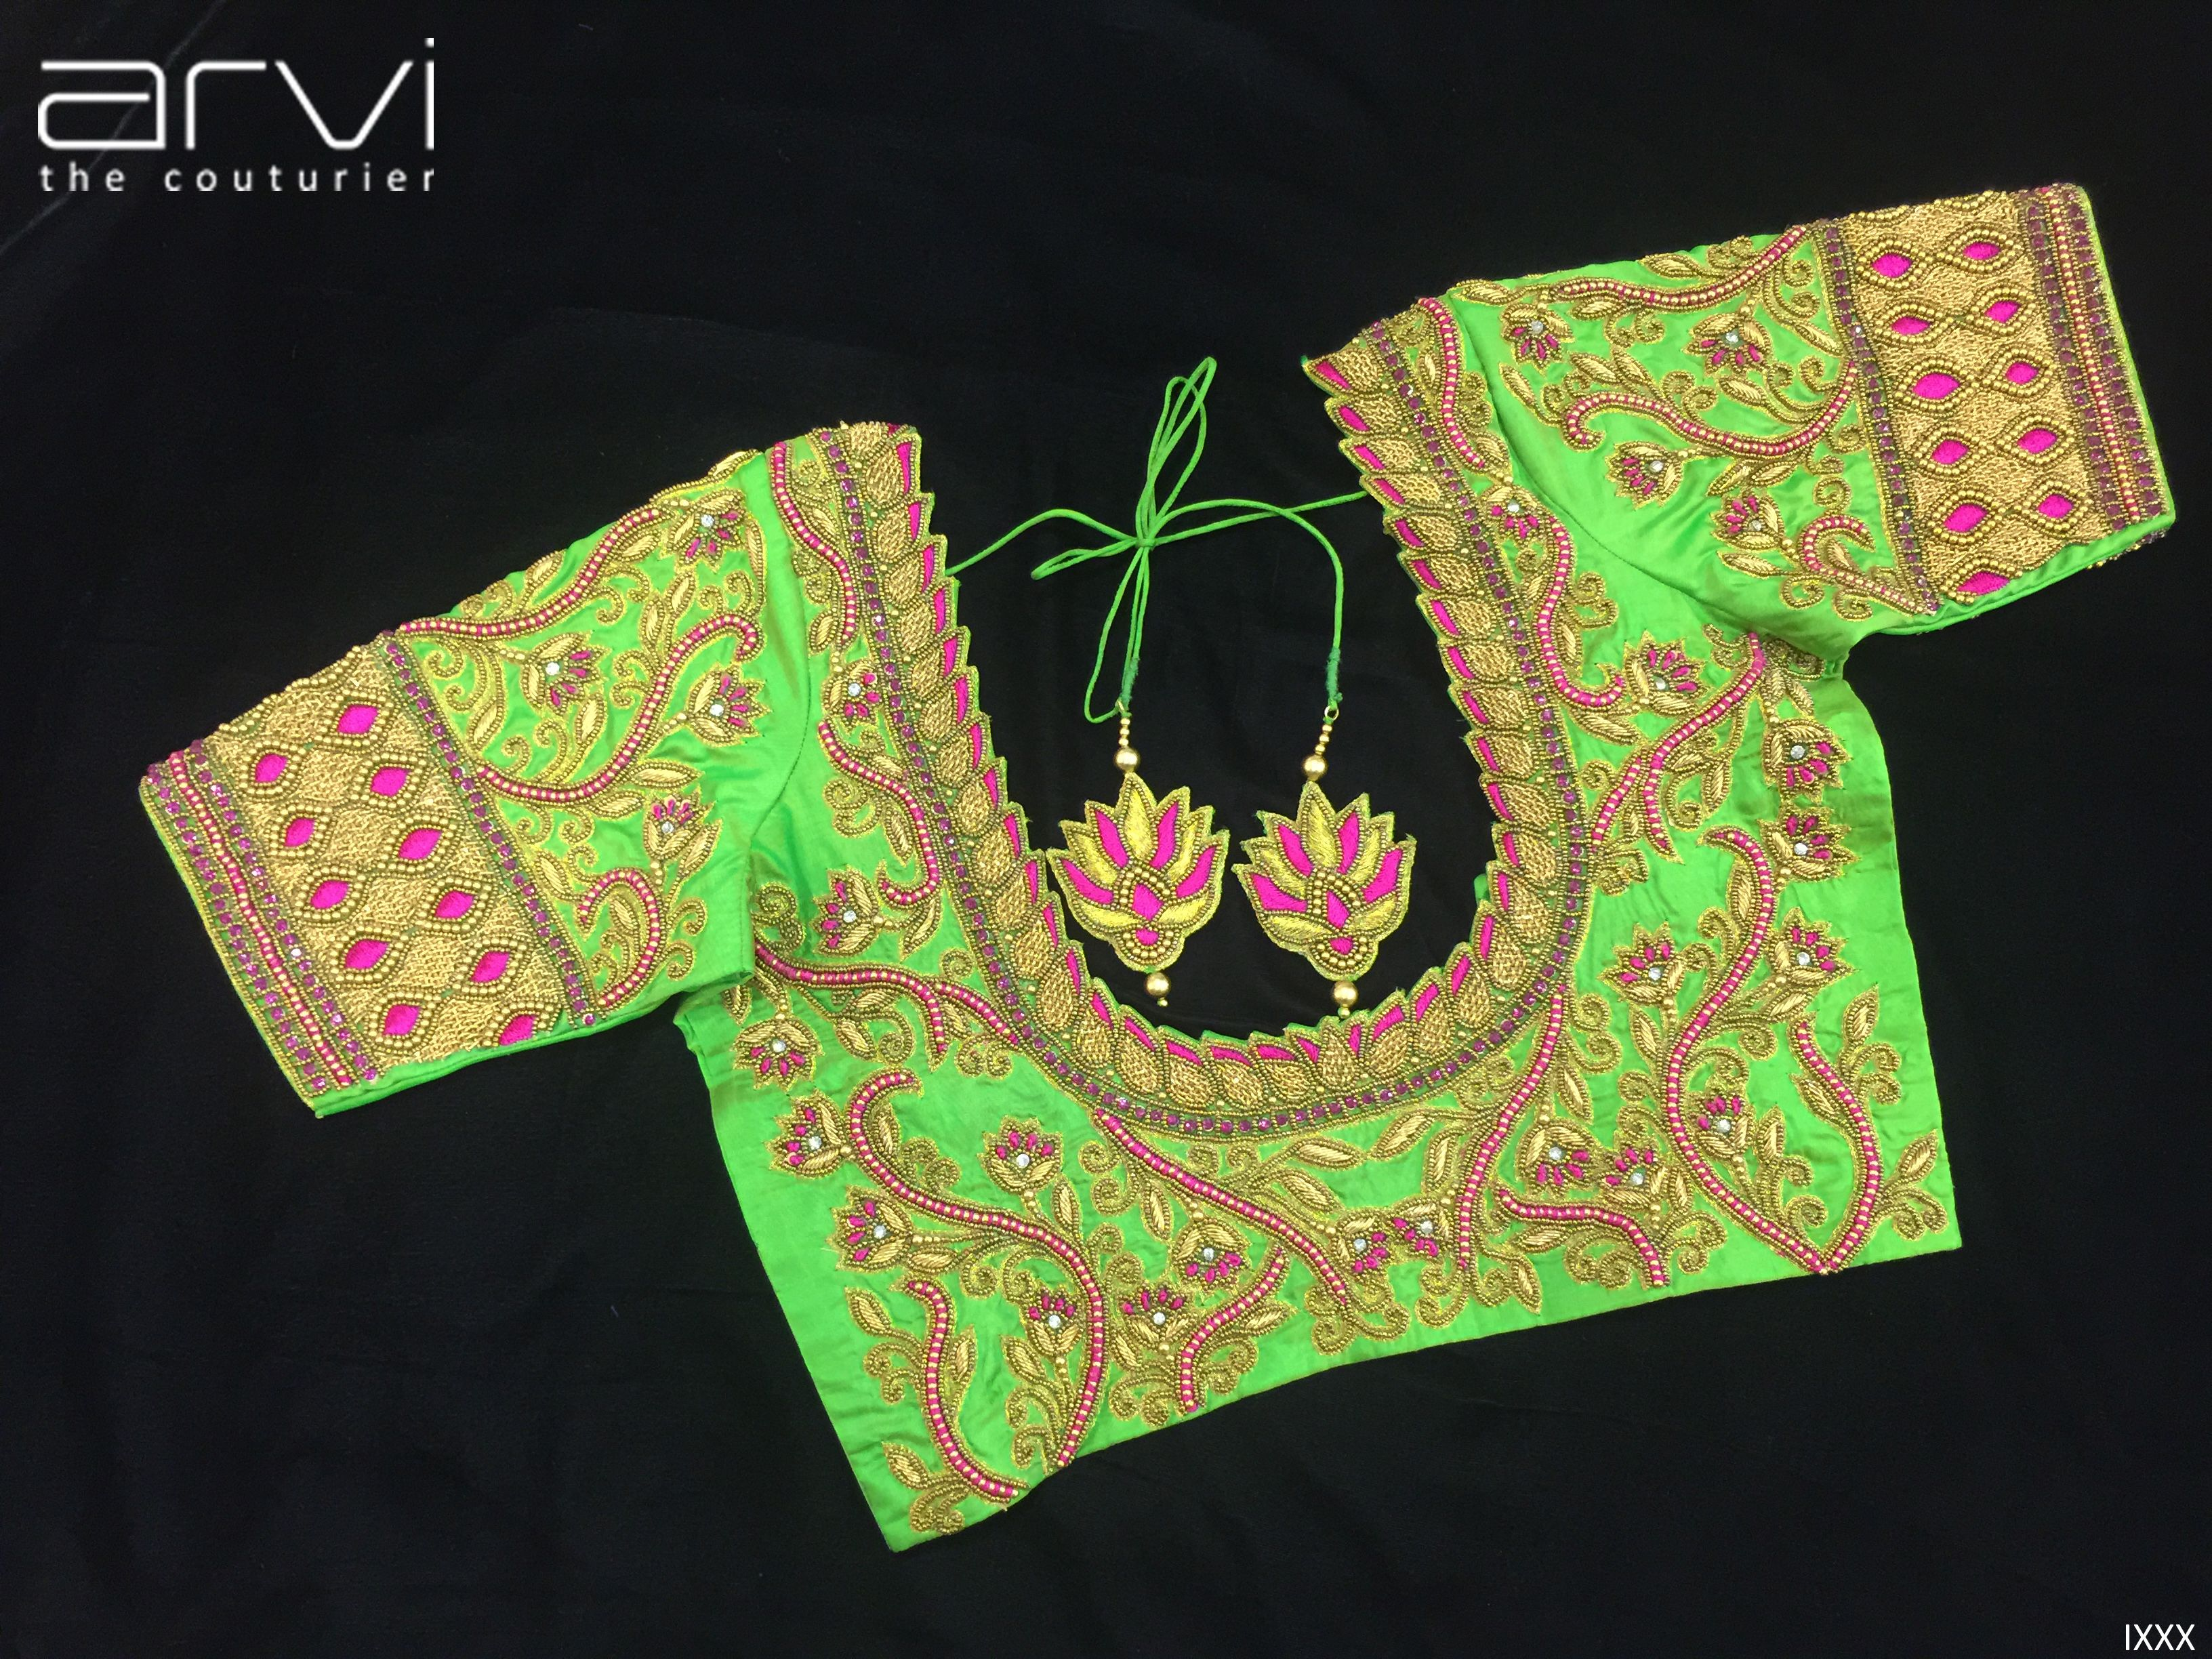 Custom Tailored Aari Work Blouse By Arvi The Couturier Bride Southindianbride Wedding Southindianwedding Prewe Blouse Design Models Blouse Designs Fashion